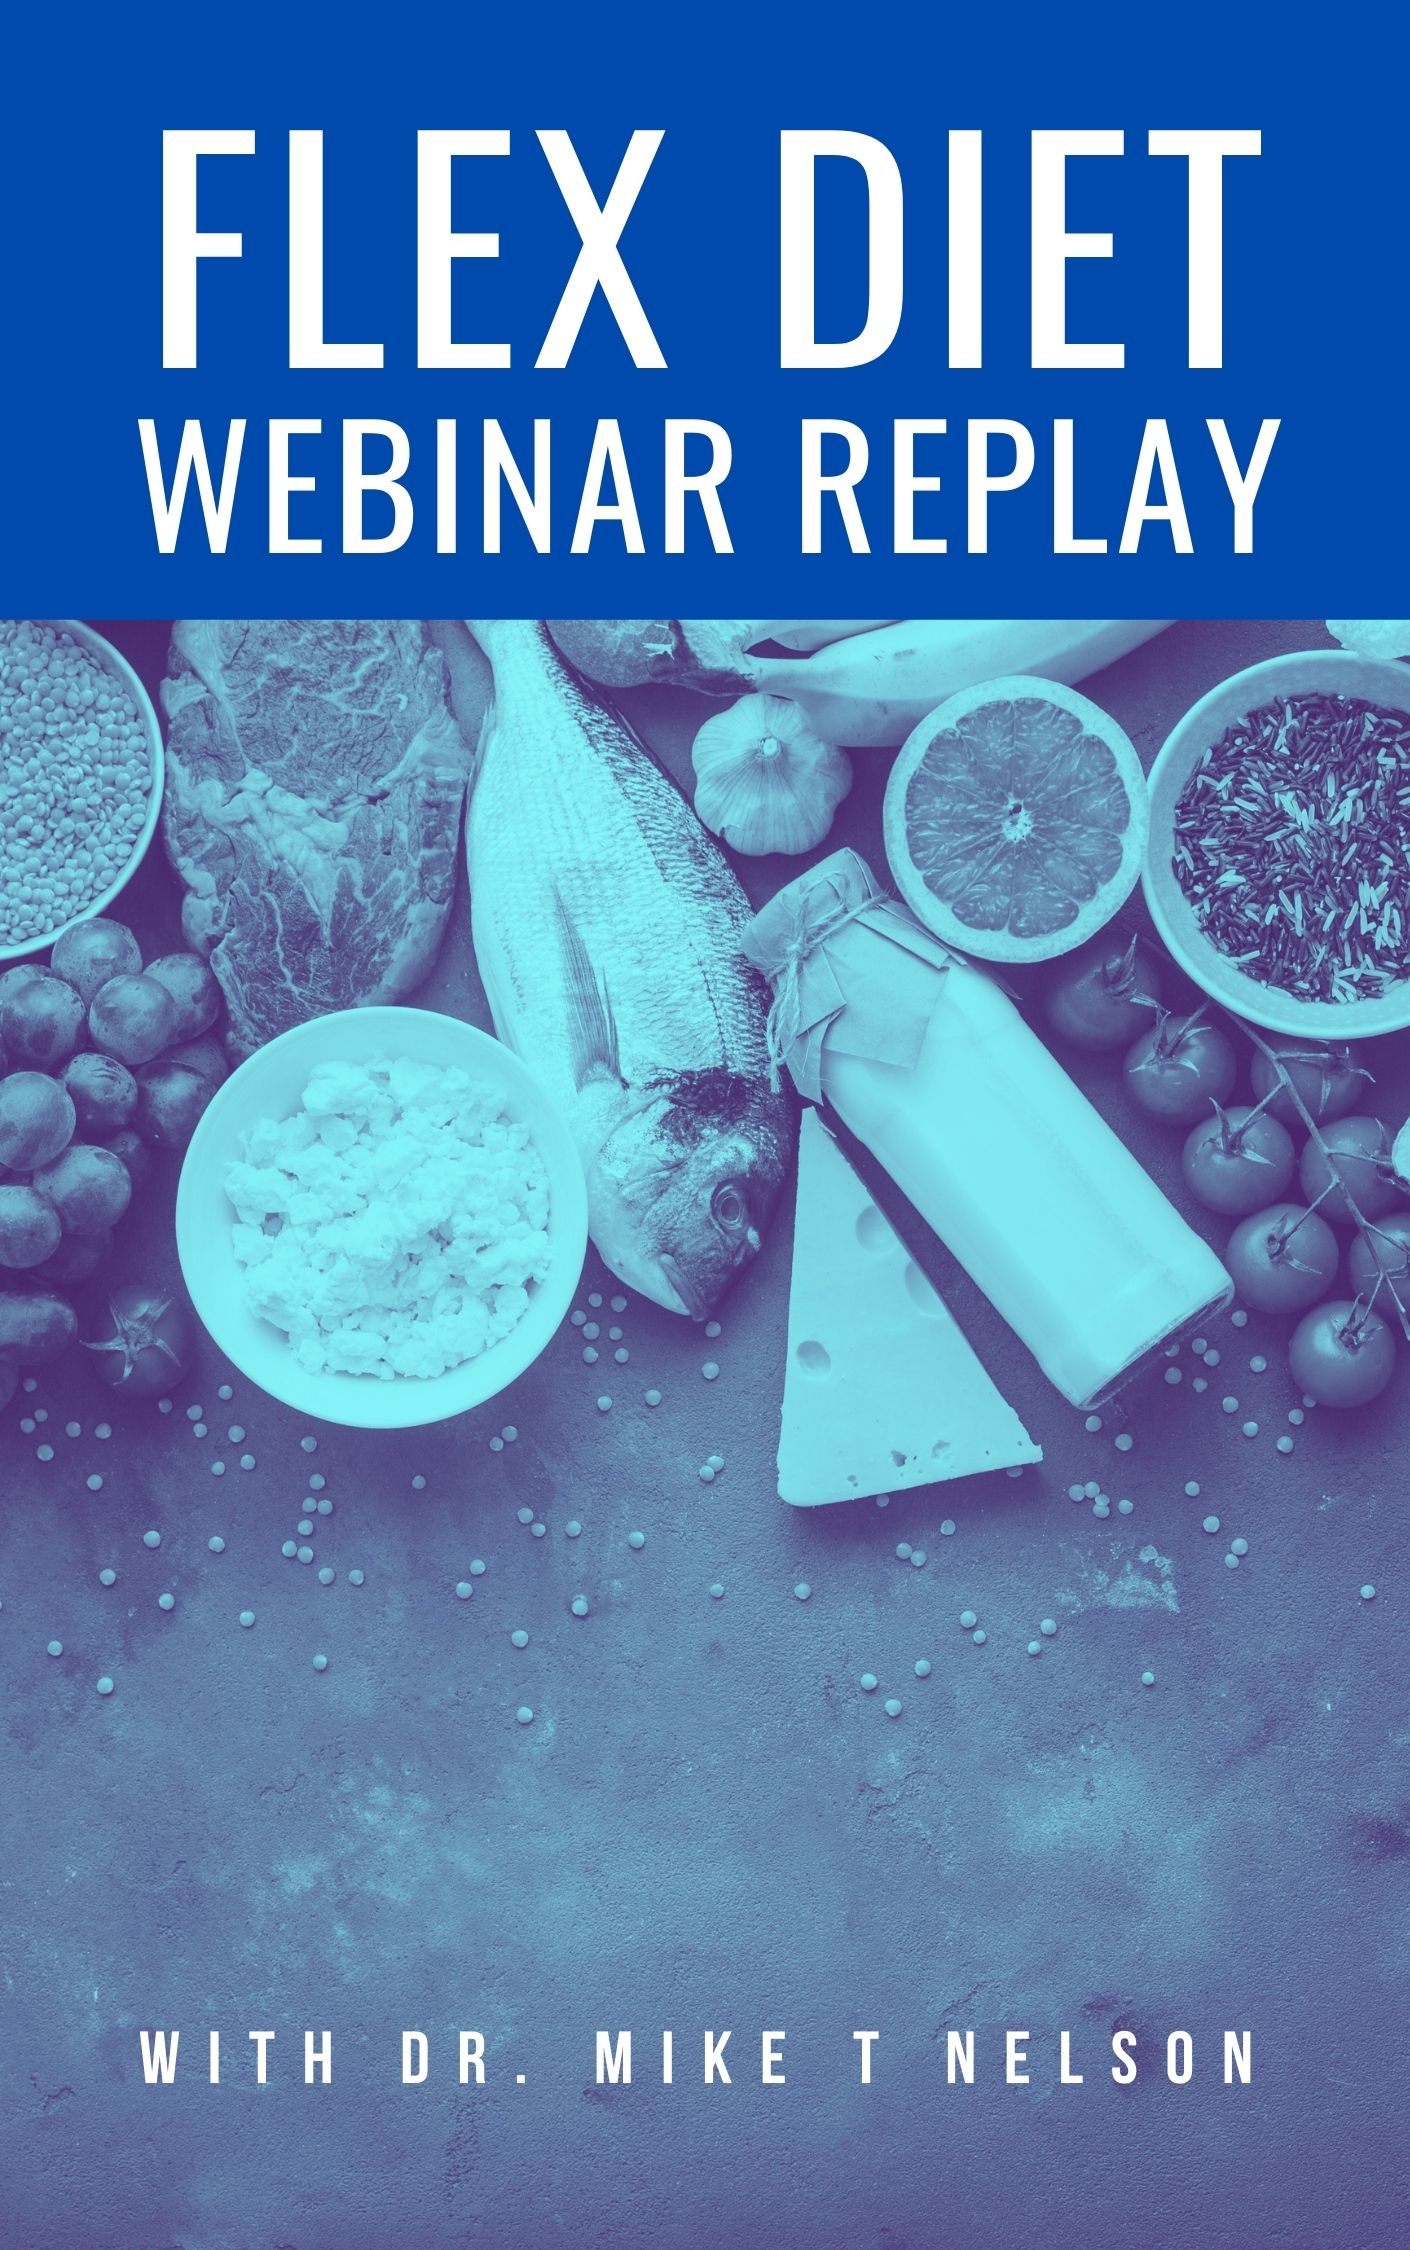 Flex Diet Webinar replay